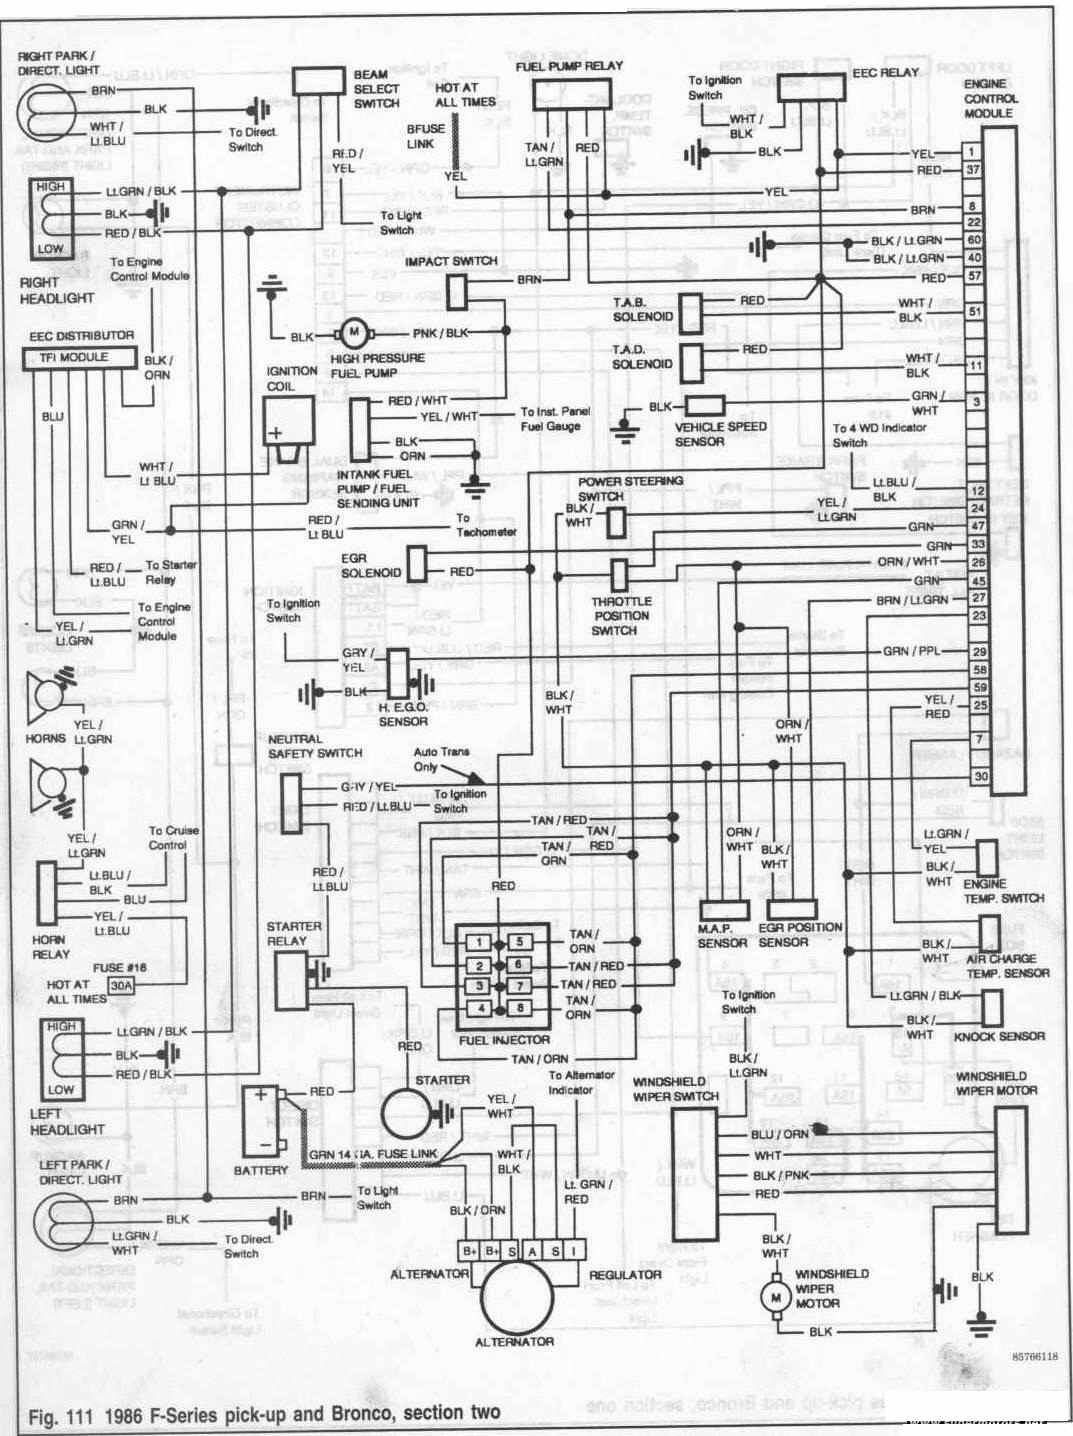 86 f150 wiring diagram wiring diagram expert 86 f150 headlight wiring diagram 86 f150 wiring diagram [ 1073 x 1436 Pixel ]